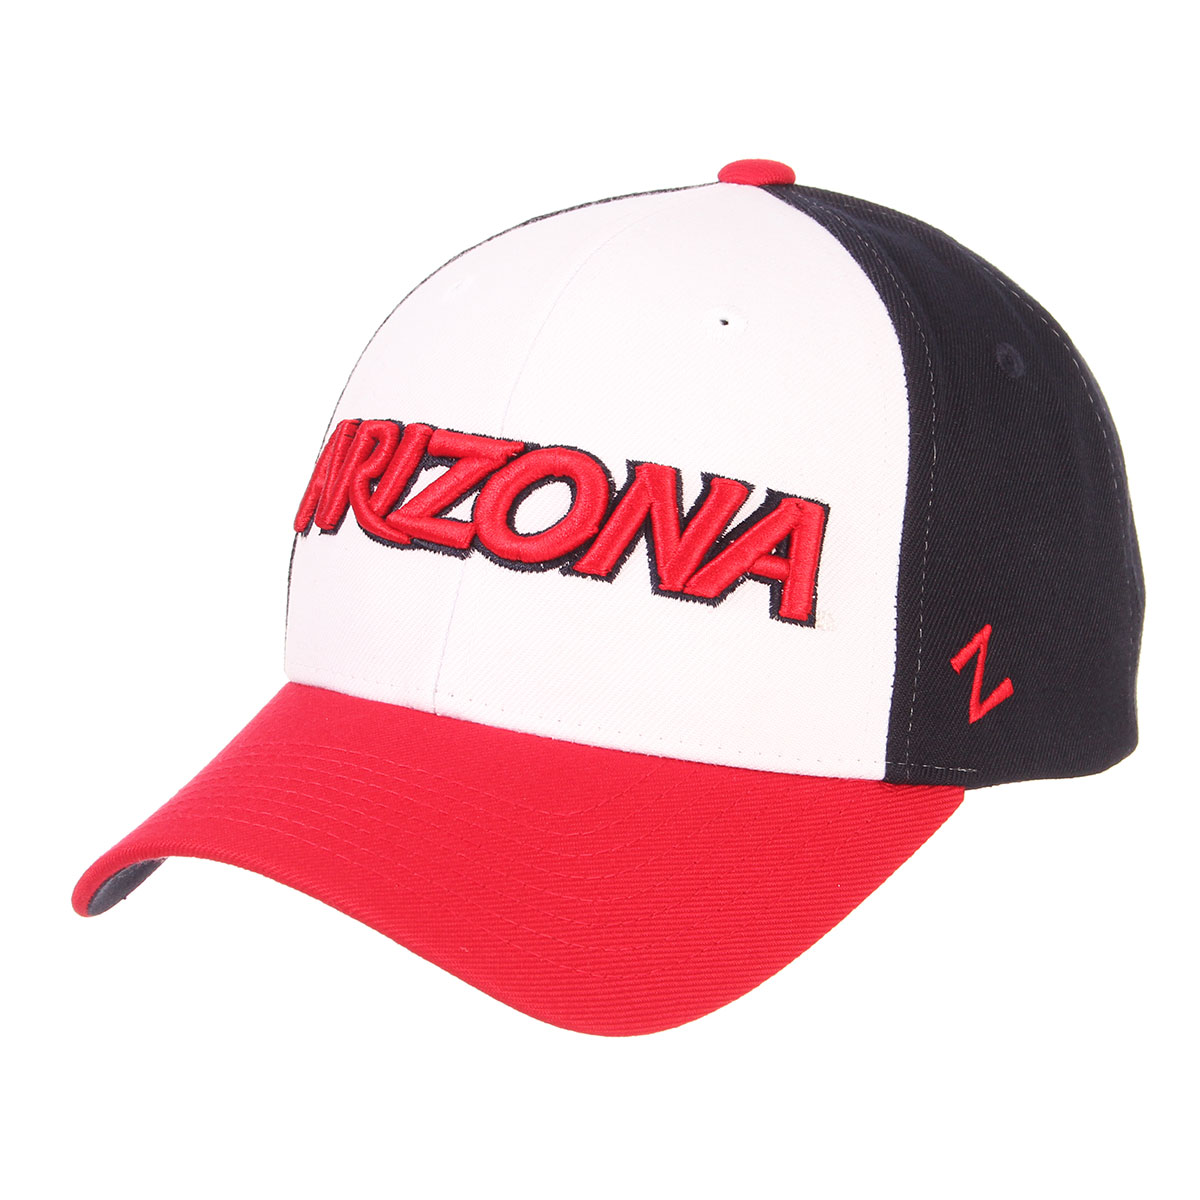 Image For Zephyr: Arizona 3 Tone Authentic Snapback Cap